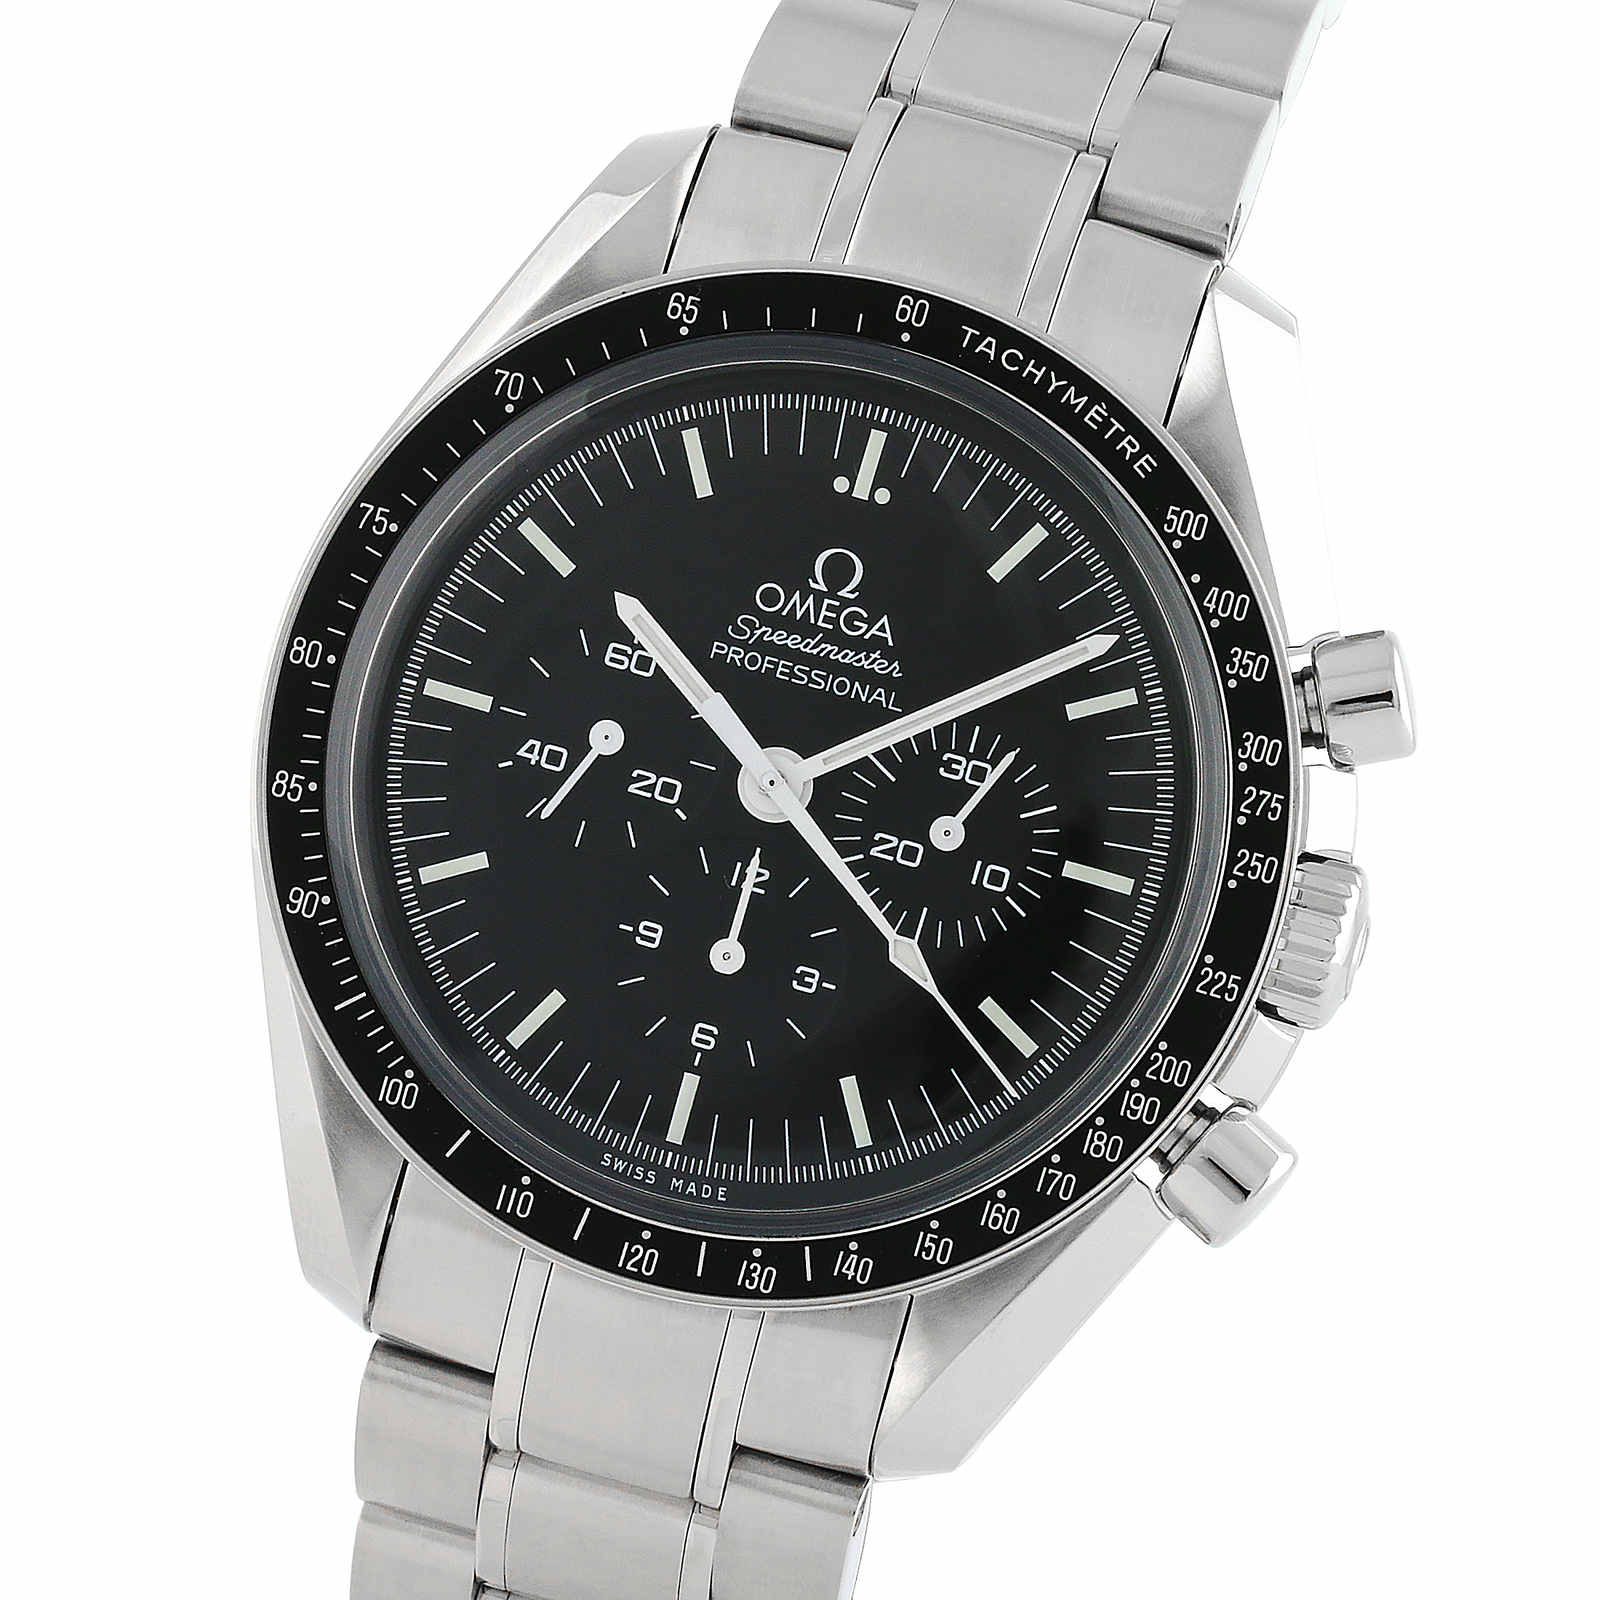 watch by speedmaster on omega professional watches moonwatch certified p moon first the nasa